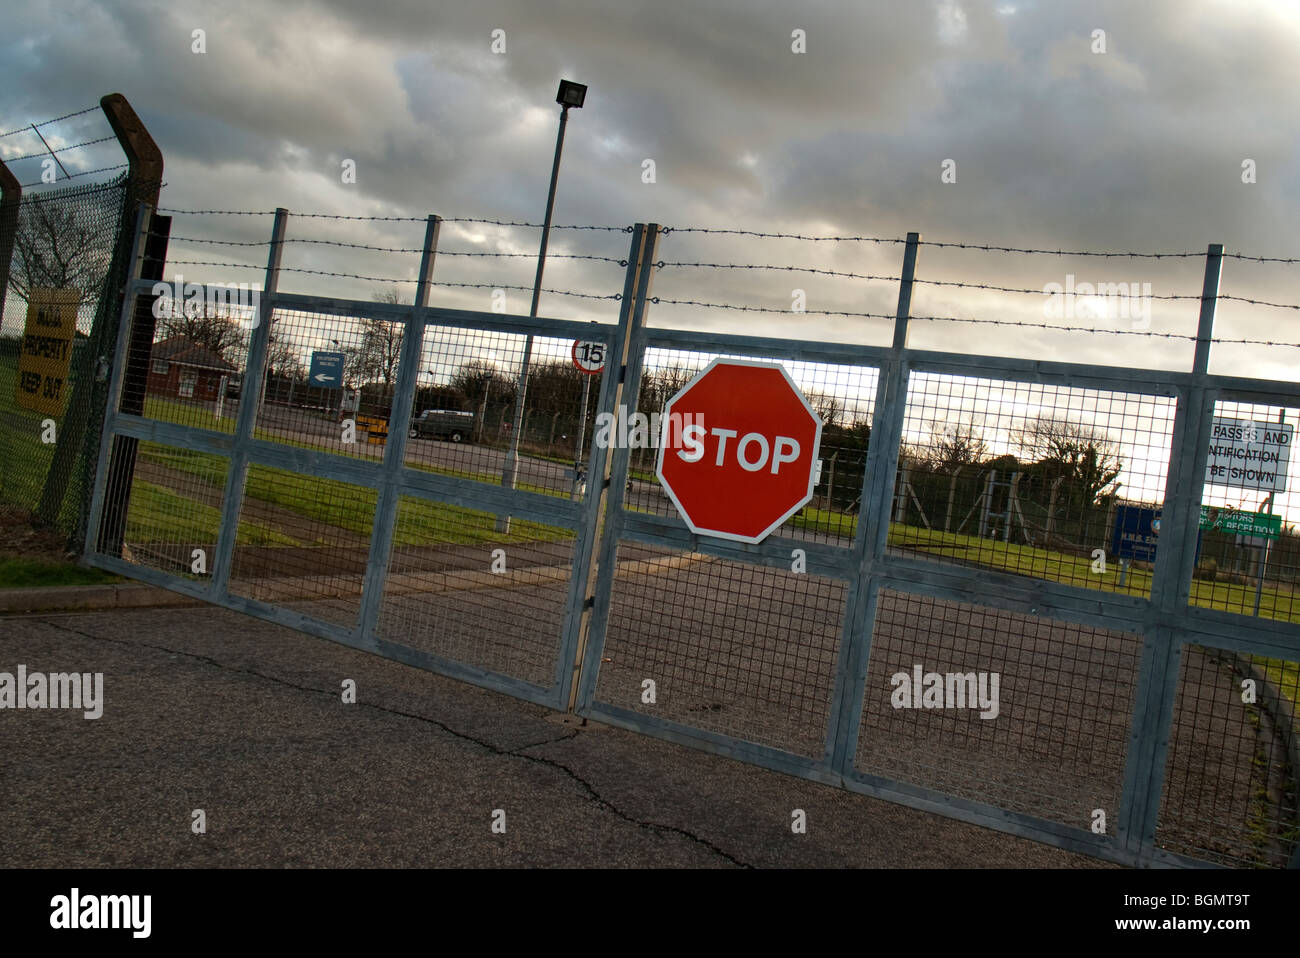 stop sign on security gate - Stock Image